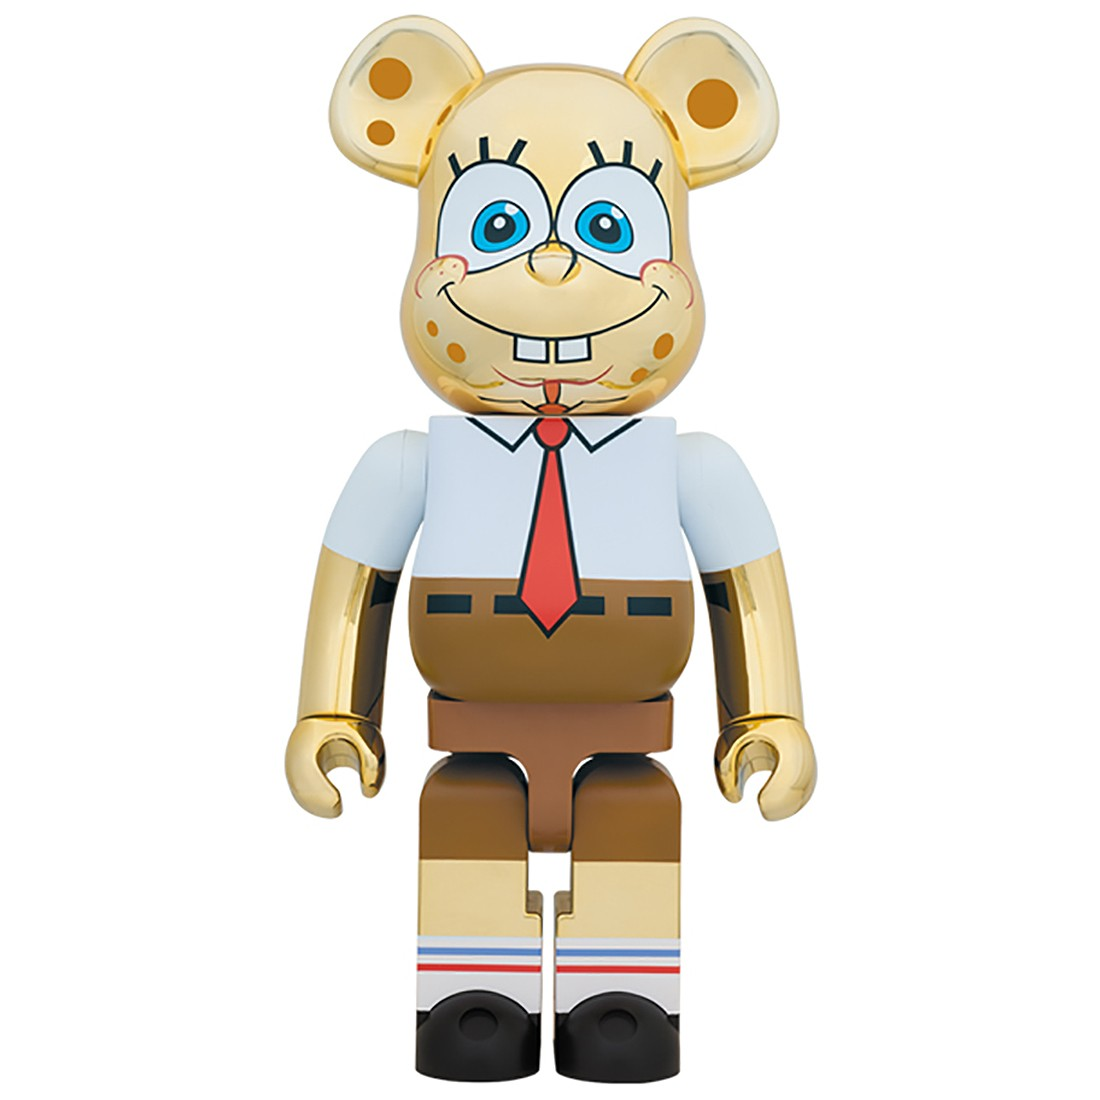 PREORDER - Medicom SpongeBob SquarePants Gold Chrome 1000% Bearbrick Figure (gold)